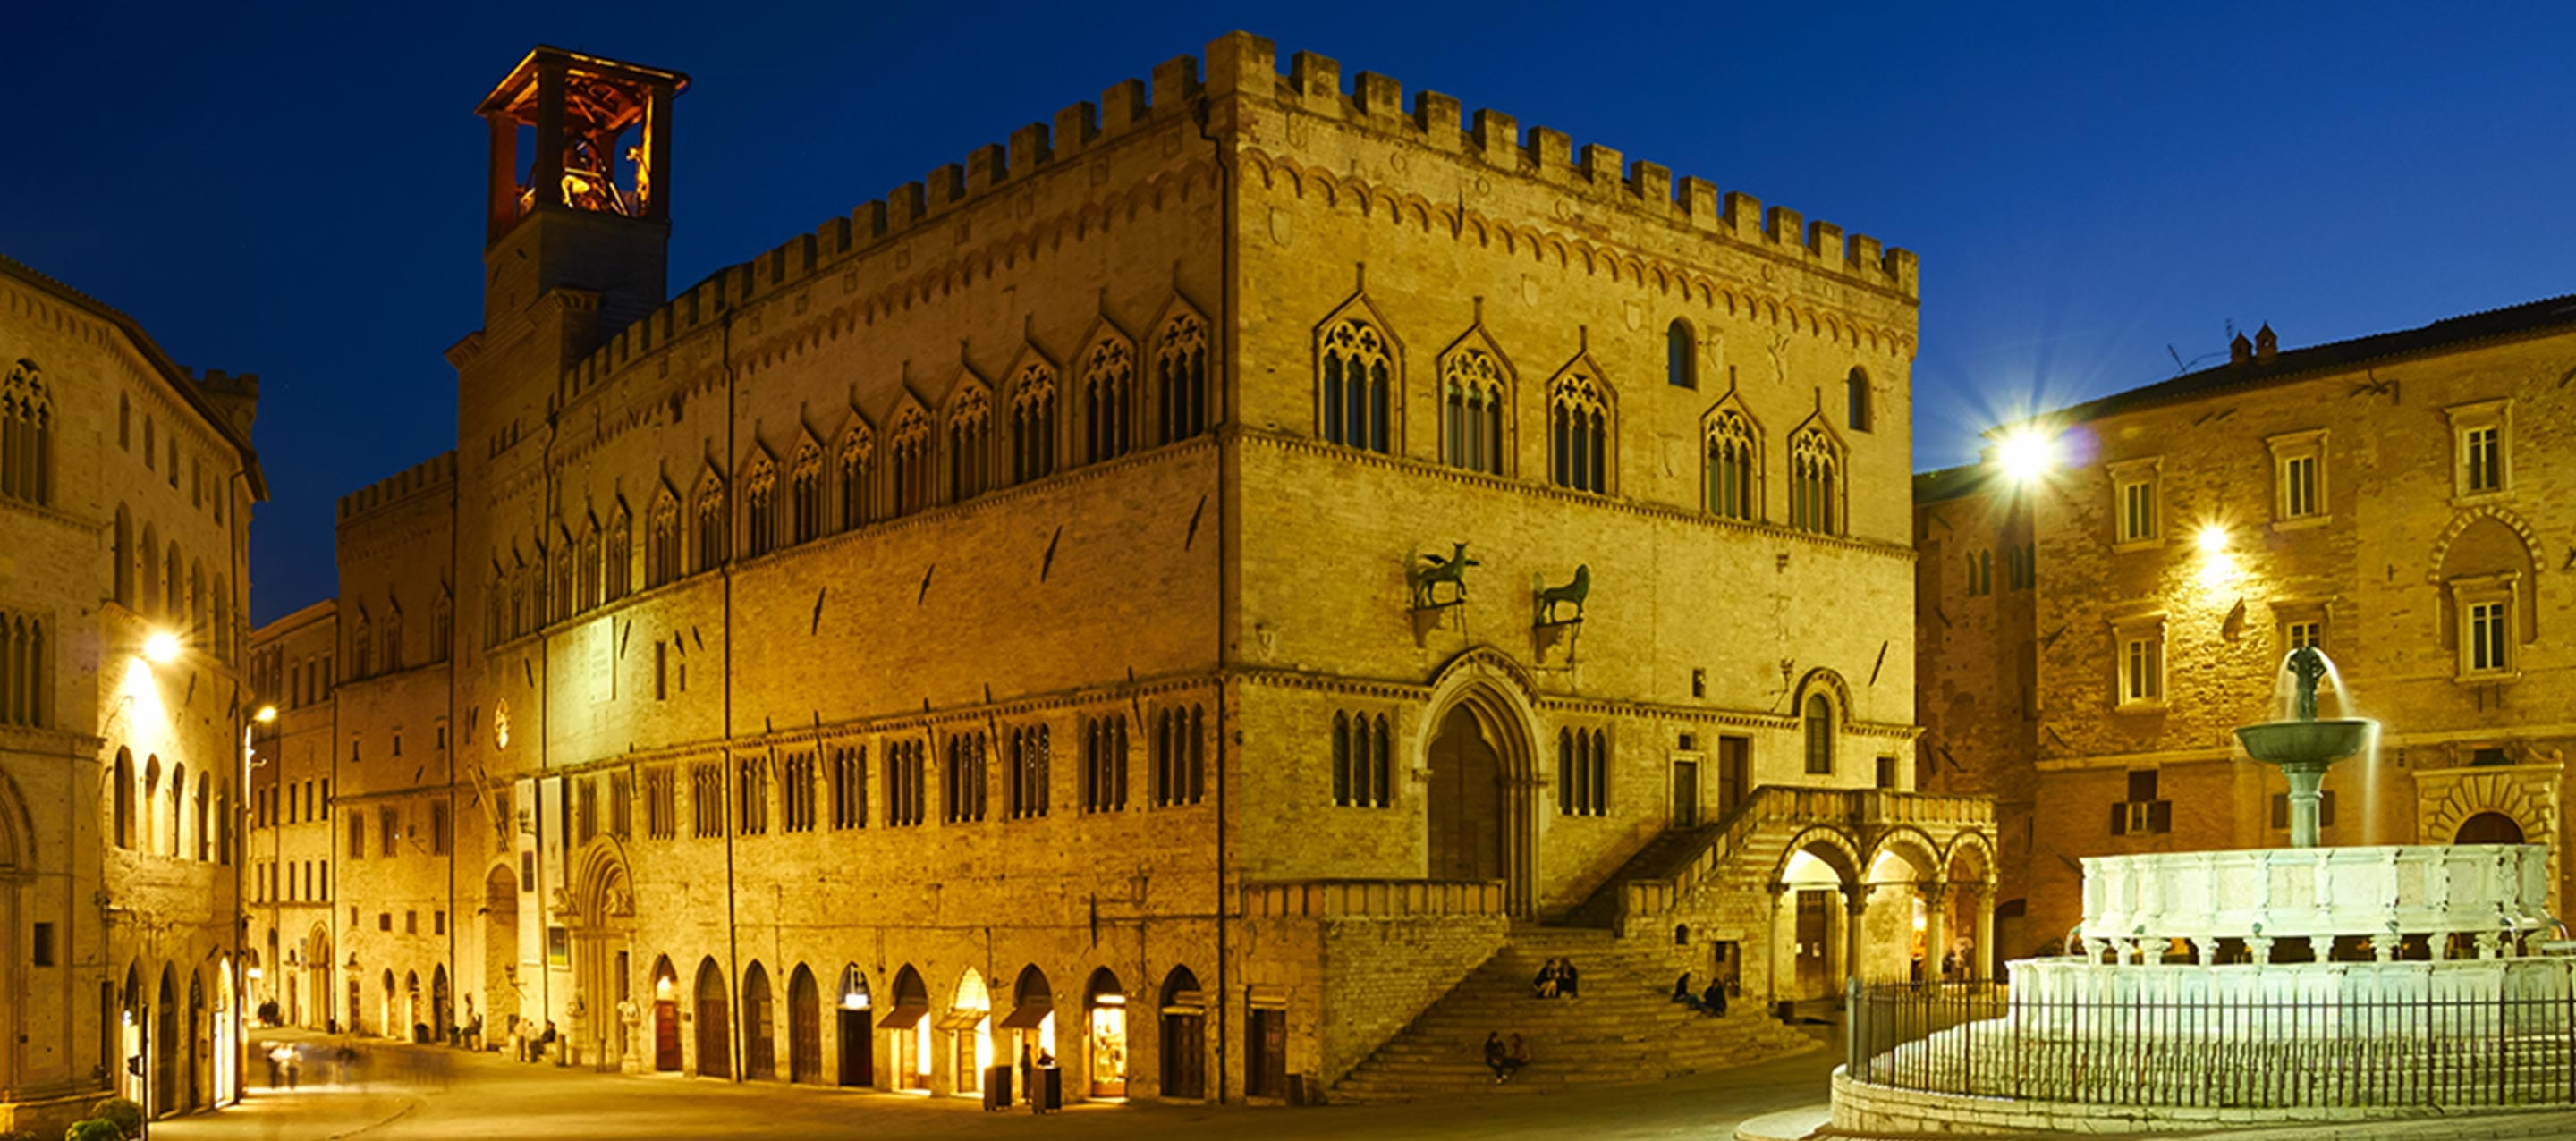 Perugia, recommended by Lonely Planet and Tripadvisor